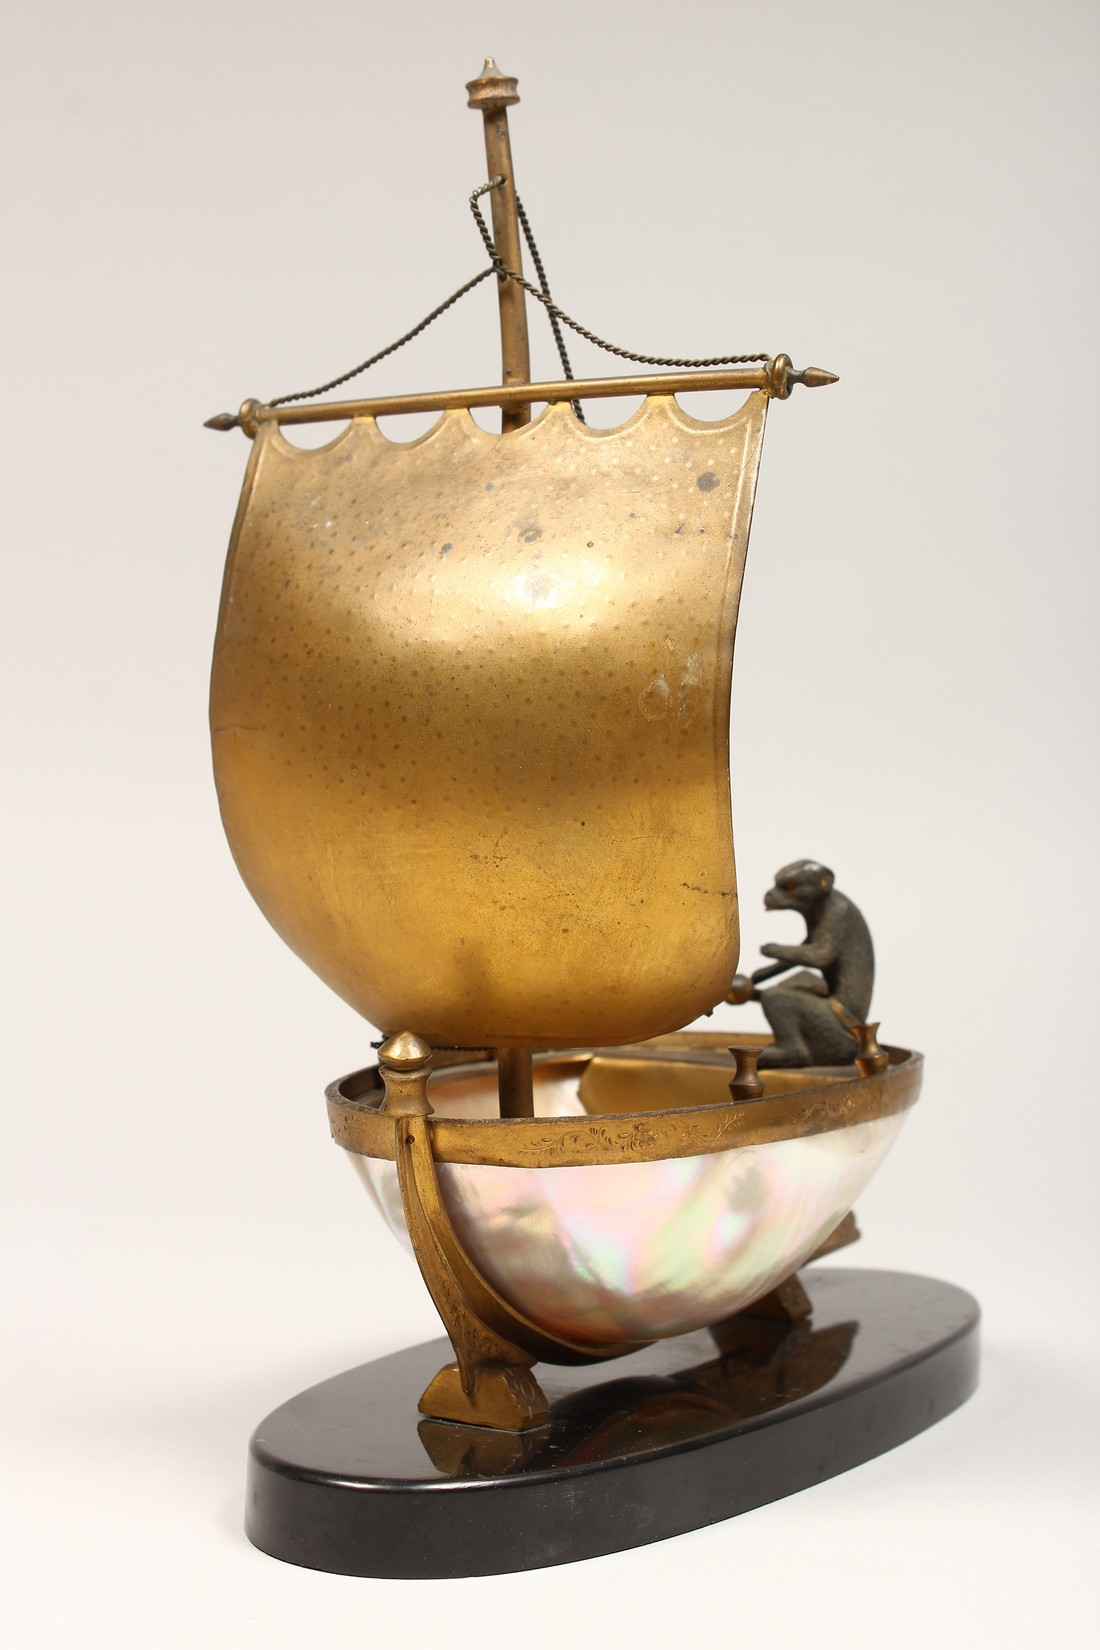 AN UNUSUAL LATE 19TH CENTURY FRENCH ORMOLU MOUNTED SHELL, mounted as a small sailing dinghy, a - Image 6 of 6